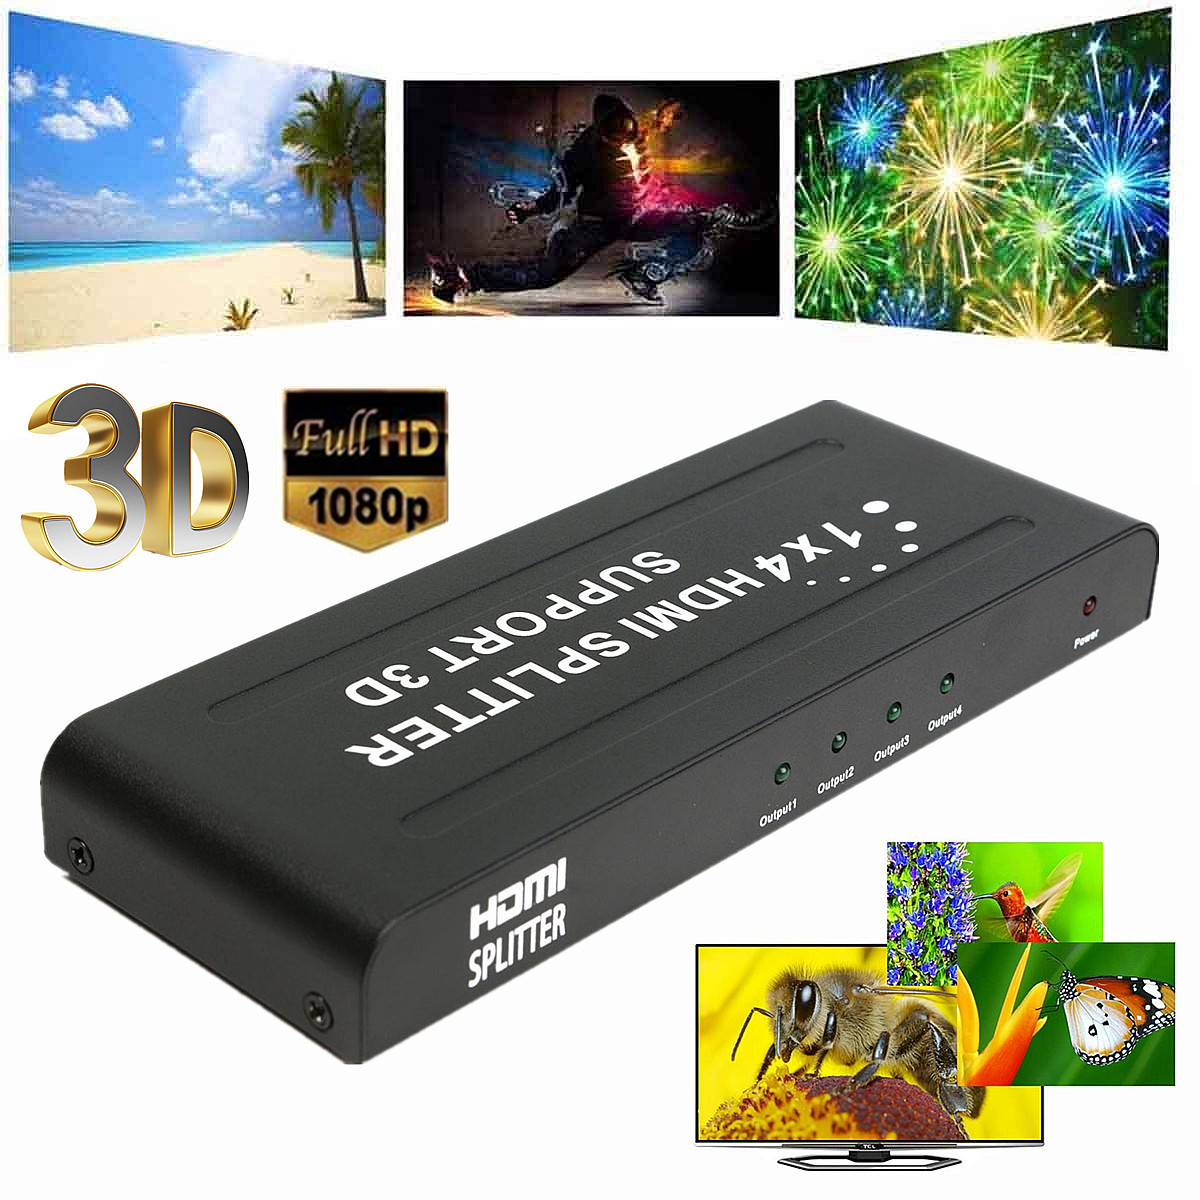 New 1 in 4 out Full HD 1080P 3D Splitter 5 Port Hub Repeater Amplifier with US-plug Power Adapter